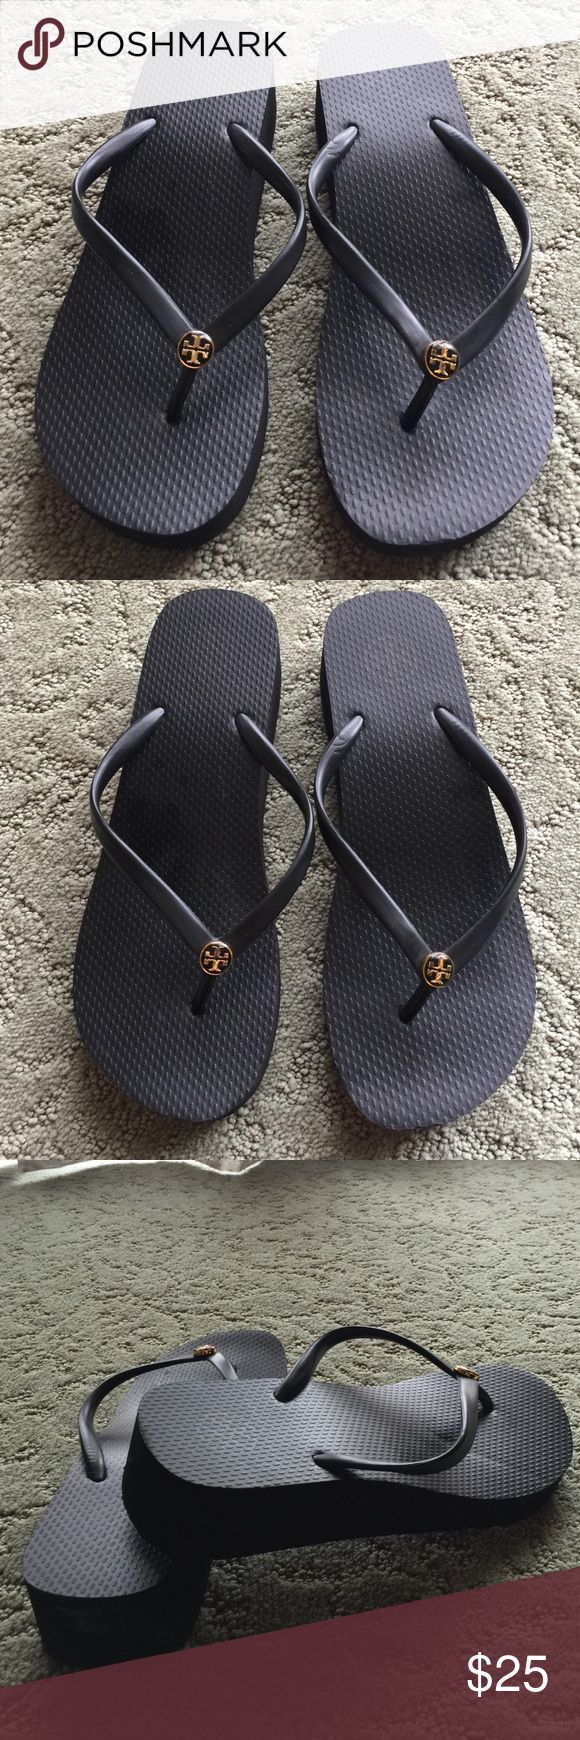 "Tory Burch Classic Wedge Flip Flops in Black Tory Burch Classic Wedge Flip Flops in Black, in great condition! Wedge is 1.6"" high, size is 8 - great deal!! Tory Burch Shoes Sandals"